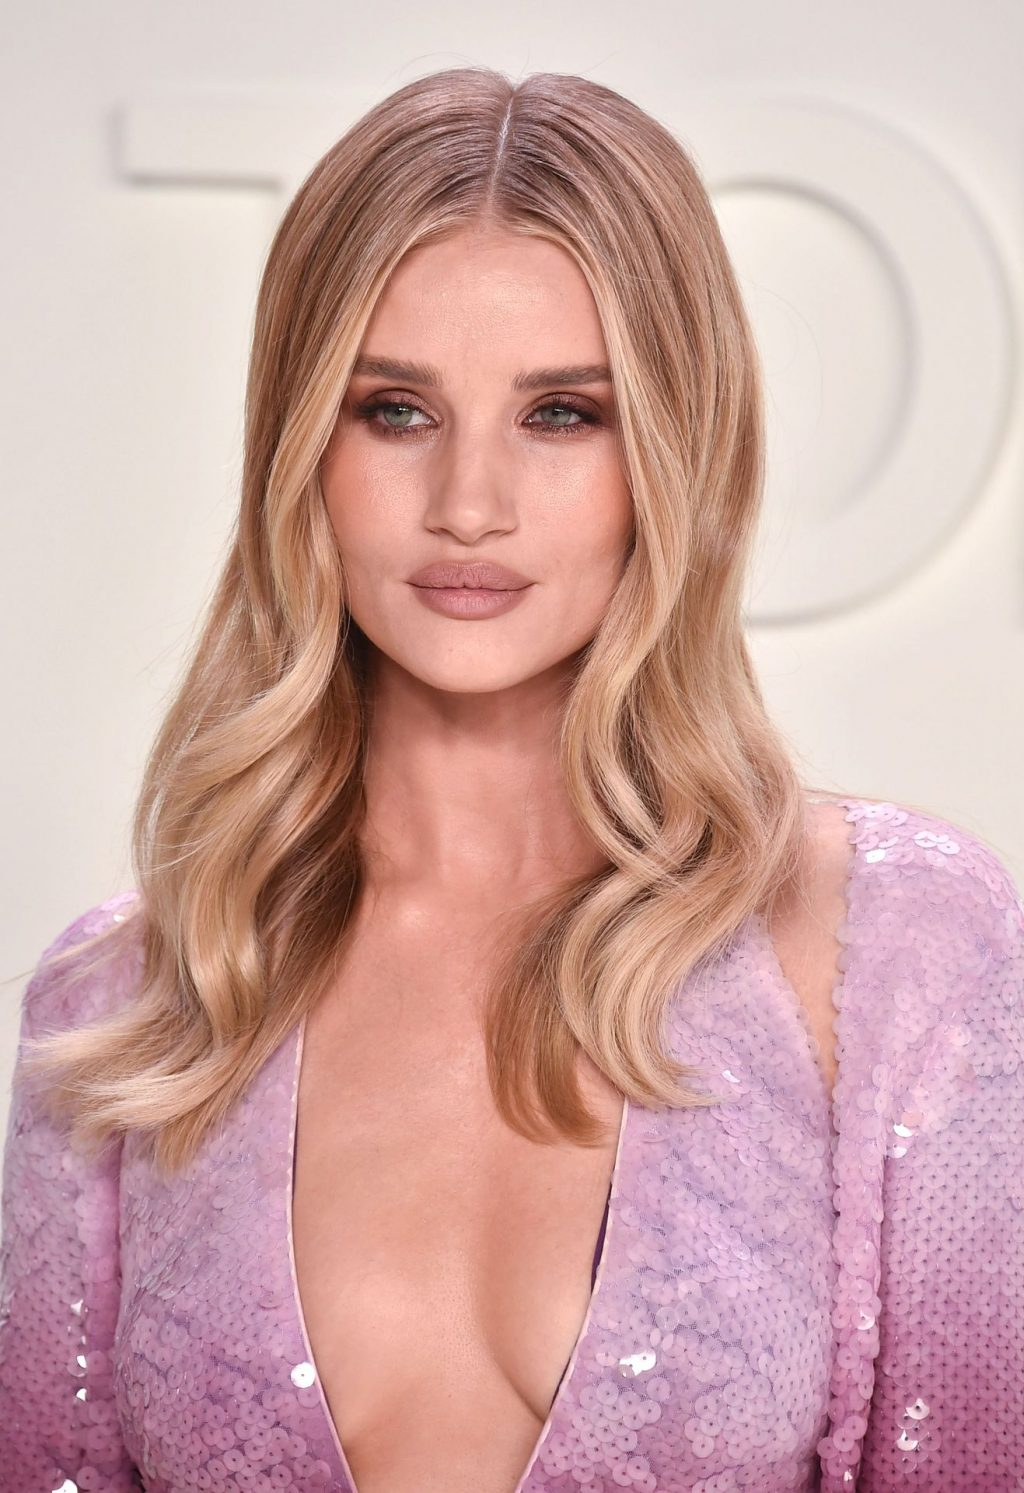 Rosie Huntington Whiteley Sexy The Fappening Blog 28 1024x1493 - Rosie Huntington-Whiteley Shows Her Cleavage at the Tom Ford Fashion Show (115 Photos)